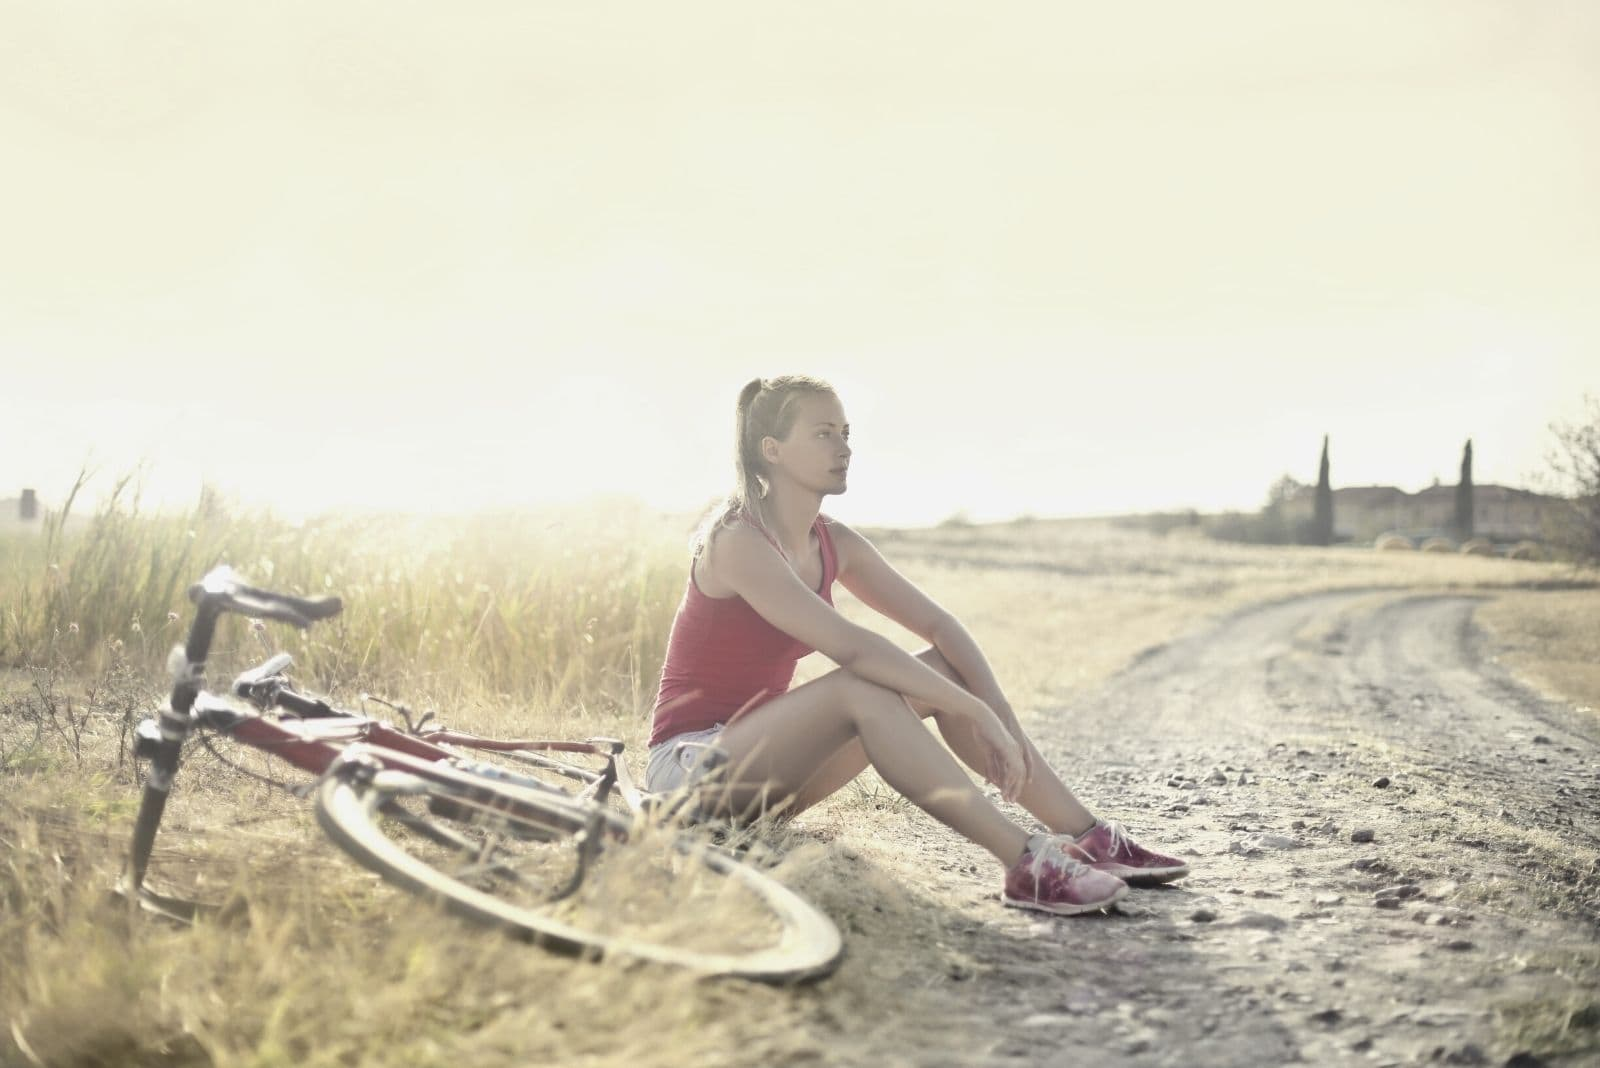 woman on dirtbike resting on the side on an open field of the country